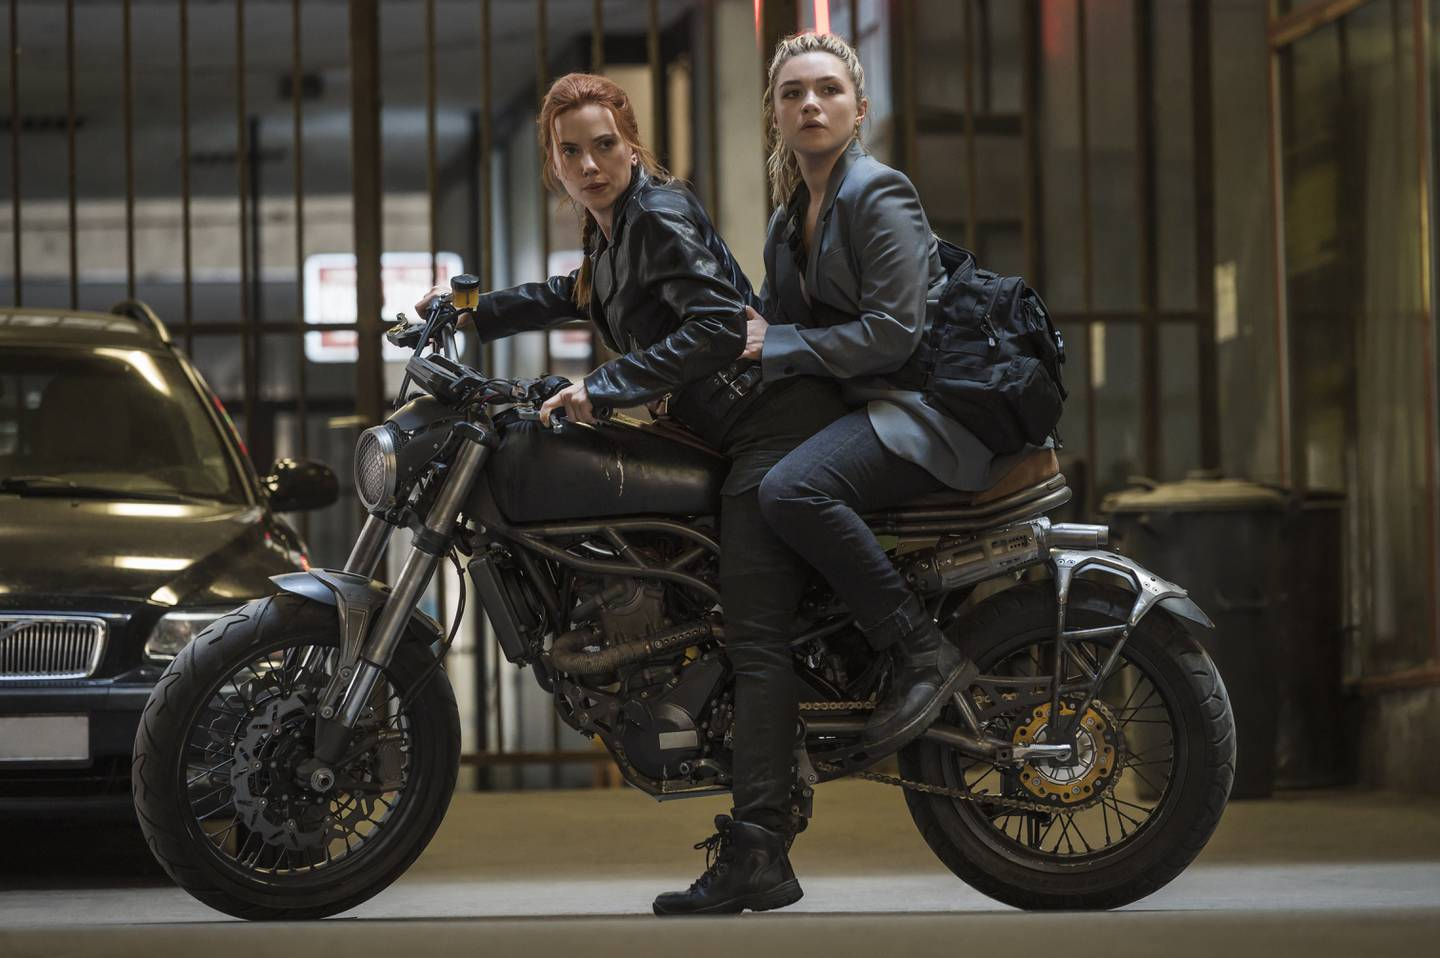 Scarlett Johansson as Black Widow/Natasha Romanoff and Florence Pugh as Yelena in Marvel Studios' BLACK WIDOW. Photo by Jay Maidment. ©Marvel Studios 2020. All Rights Reserved.